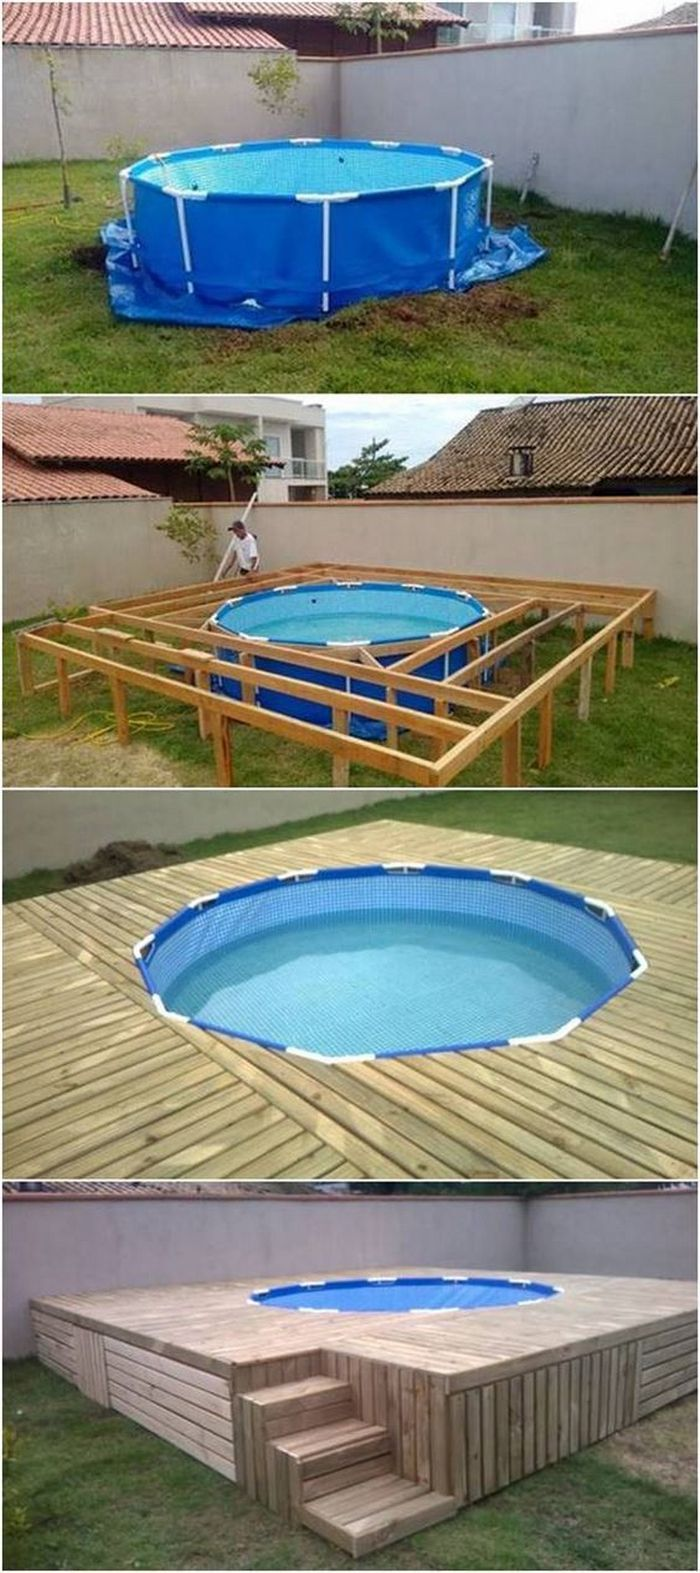 25 best ideas about swimming pool decks on pinterest - Above ground swimming pool deck ideas ...